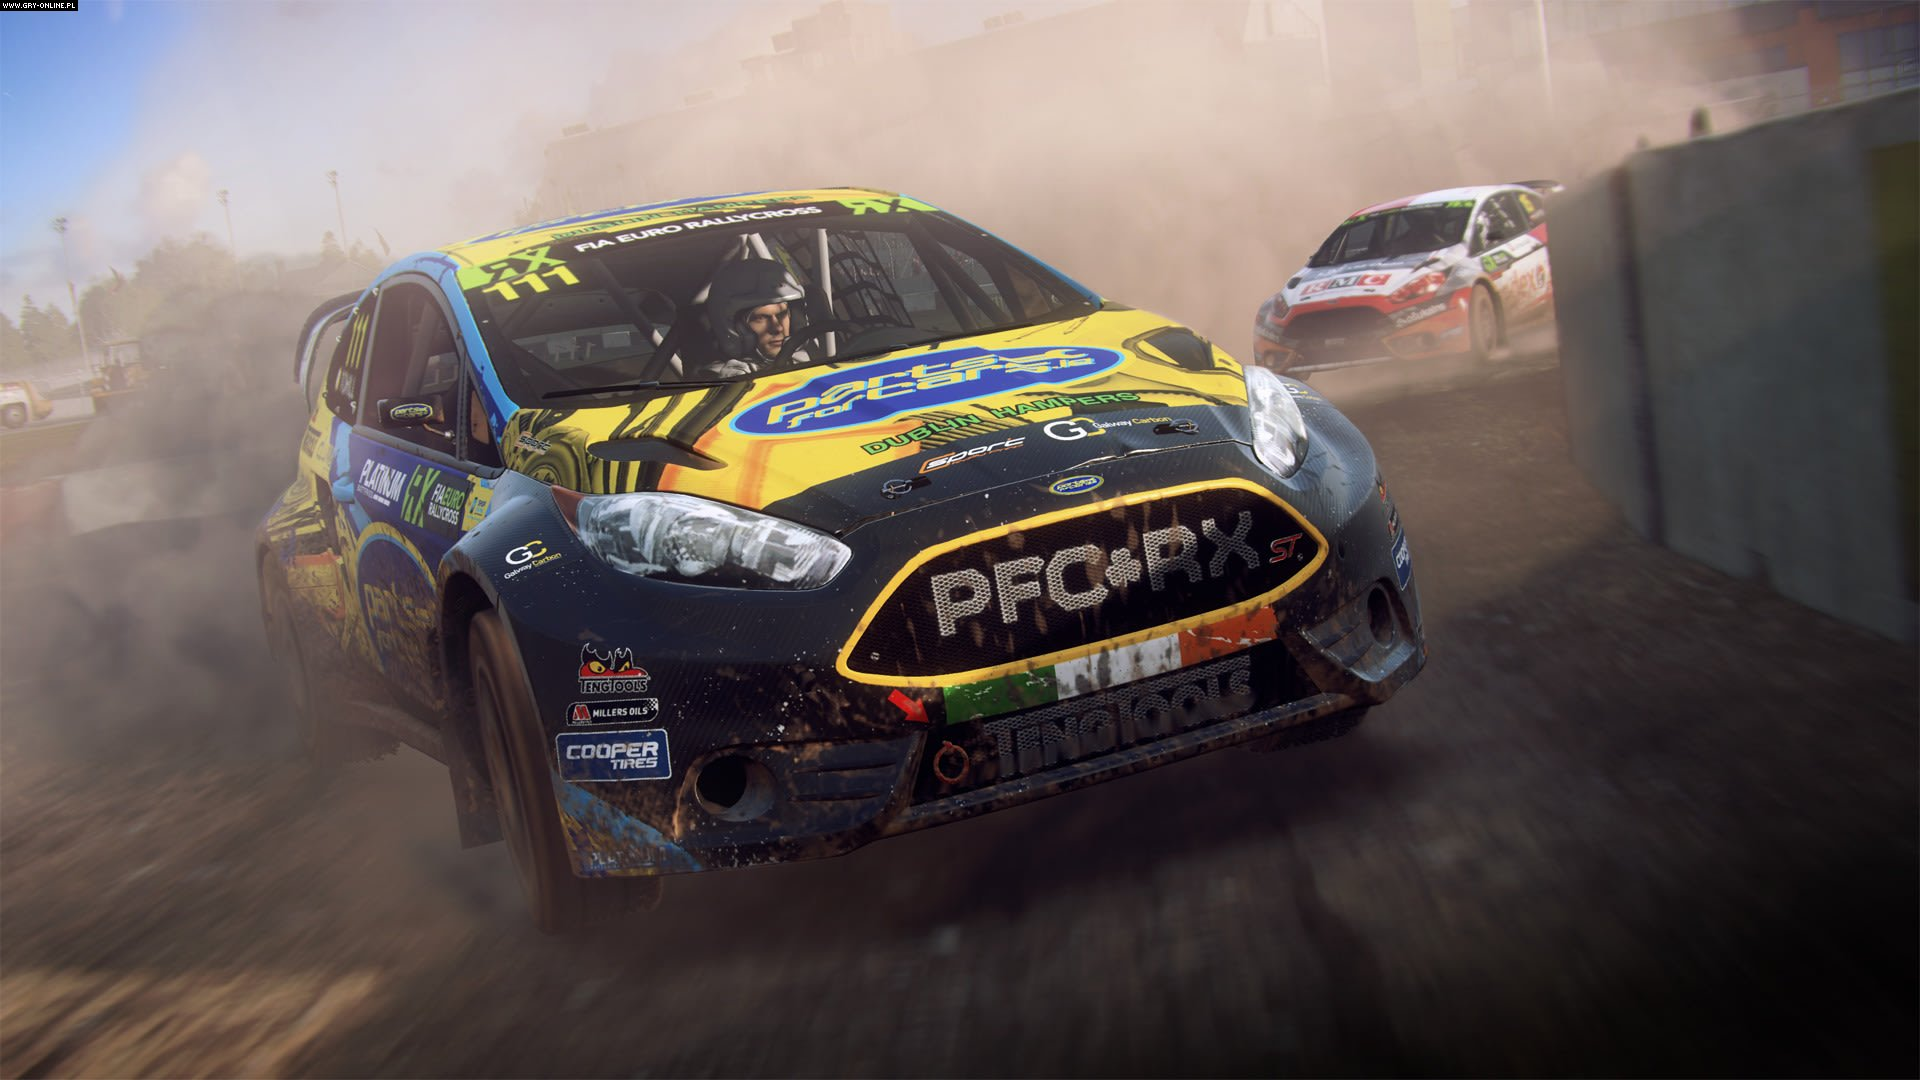 DiRT Rally 2.0 PC, PS4, XONE Games Image 13/21, Codemasters Software